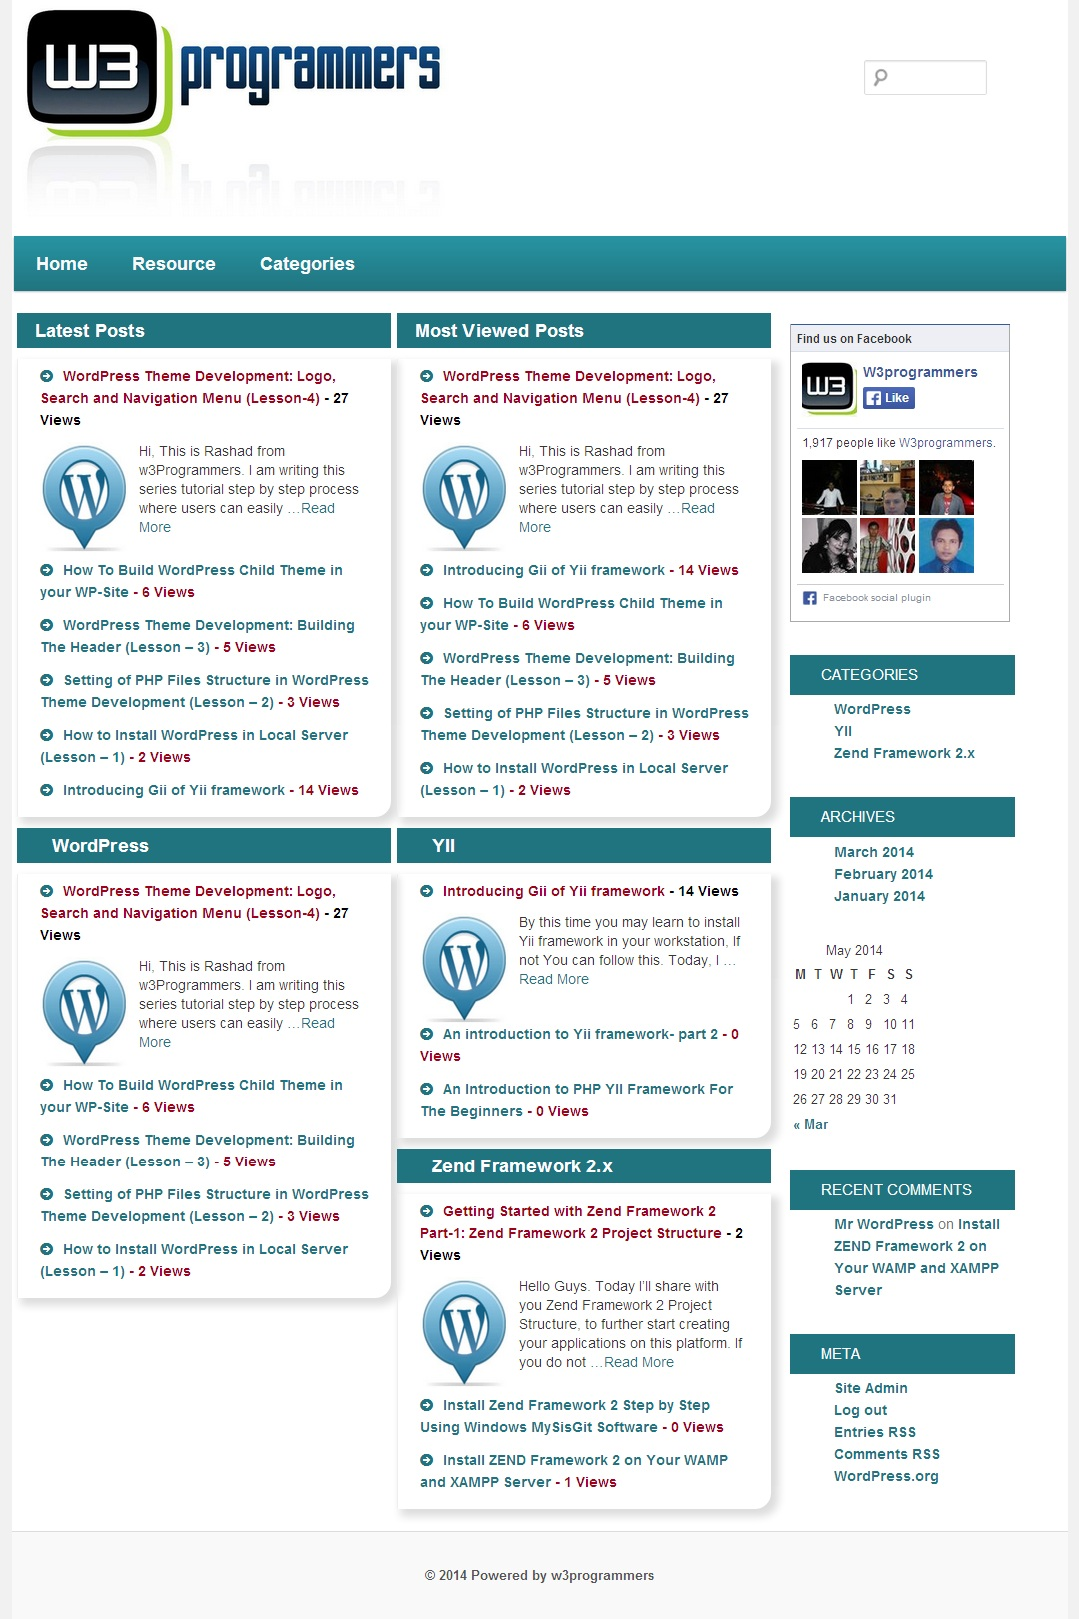 WordPress Theme Development: Recent posts and Most Viewed Posts Loop (Lesson 8)